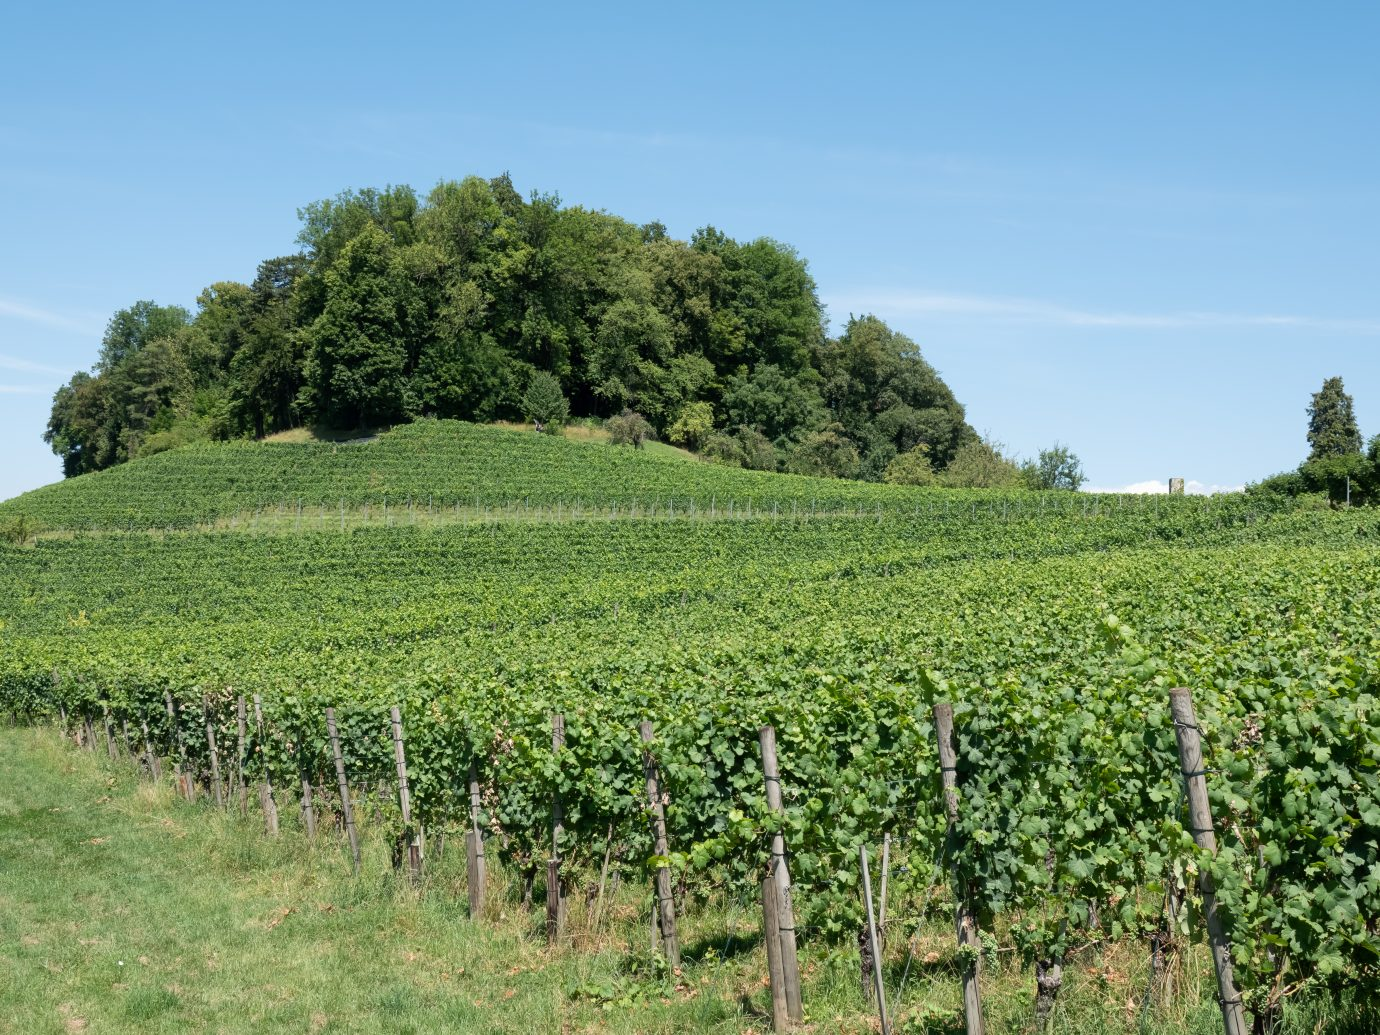 Hiking in the wine terraces of the Weinland region of the city of Zurich, Switzerland